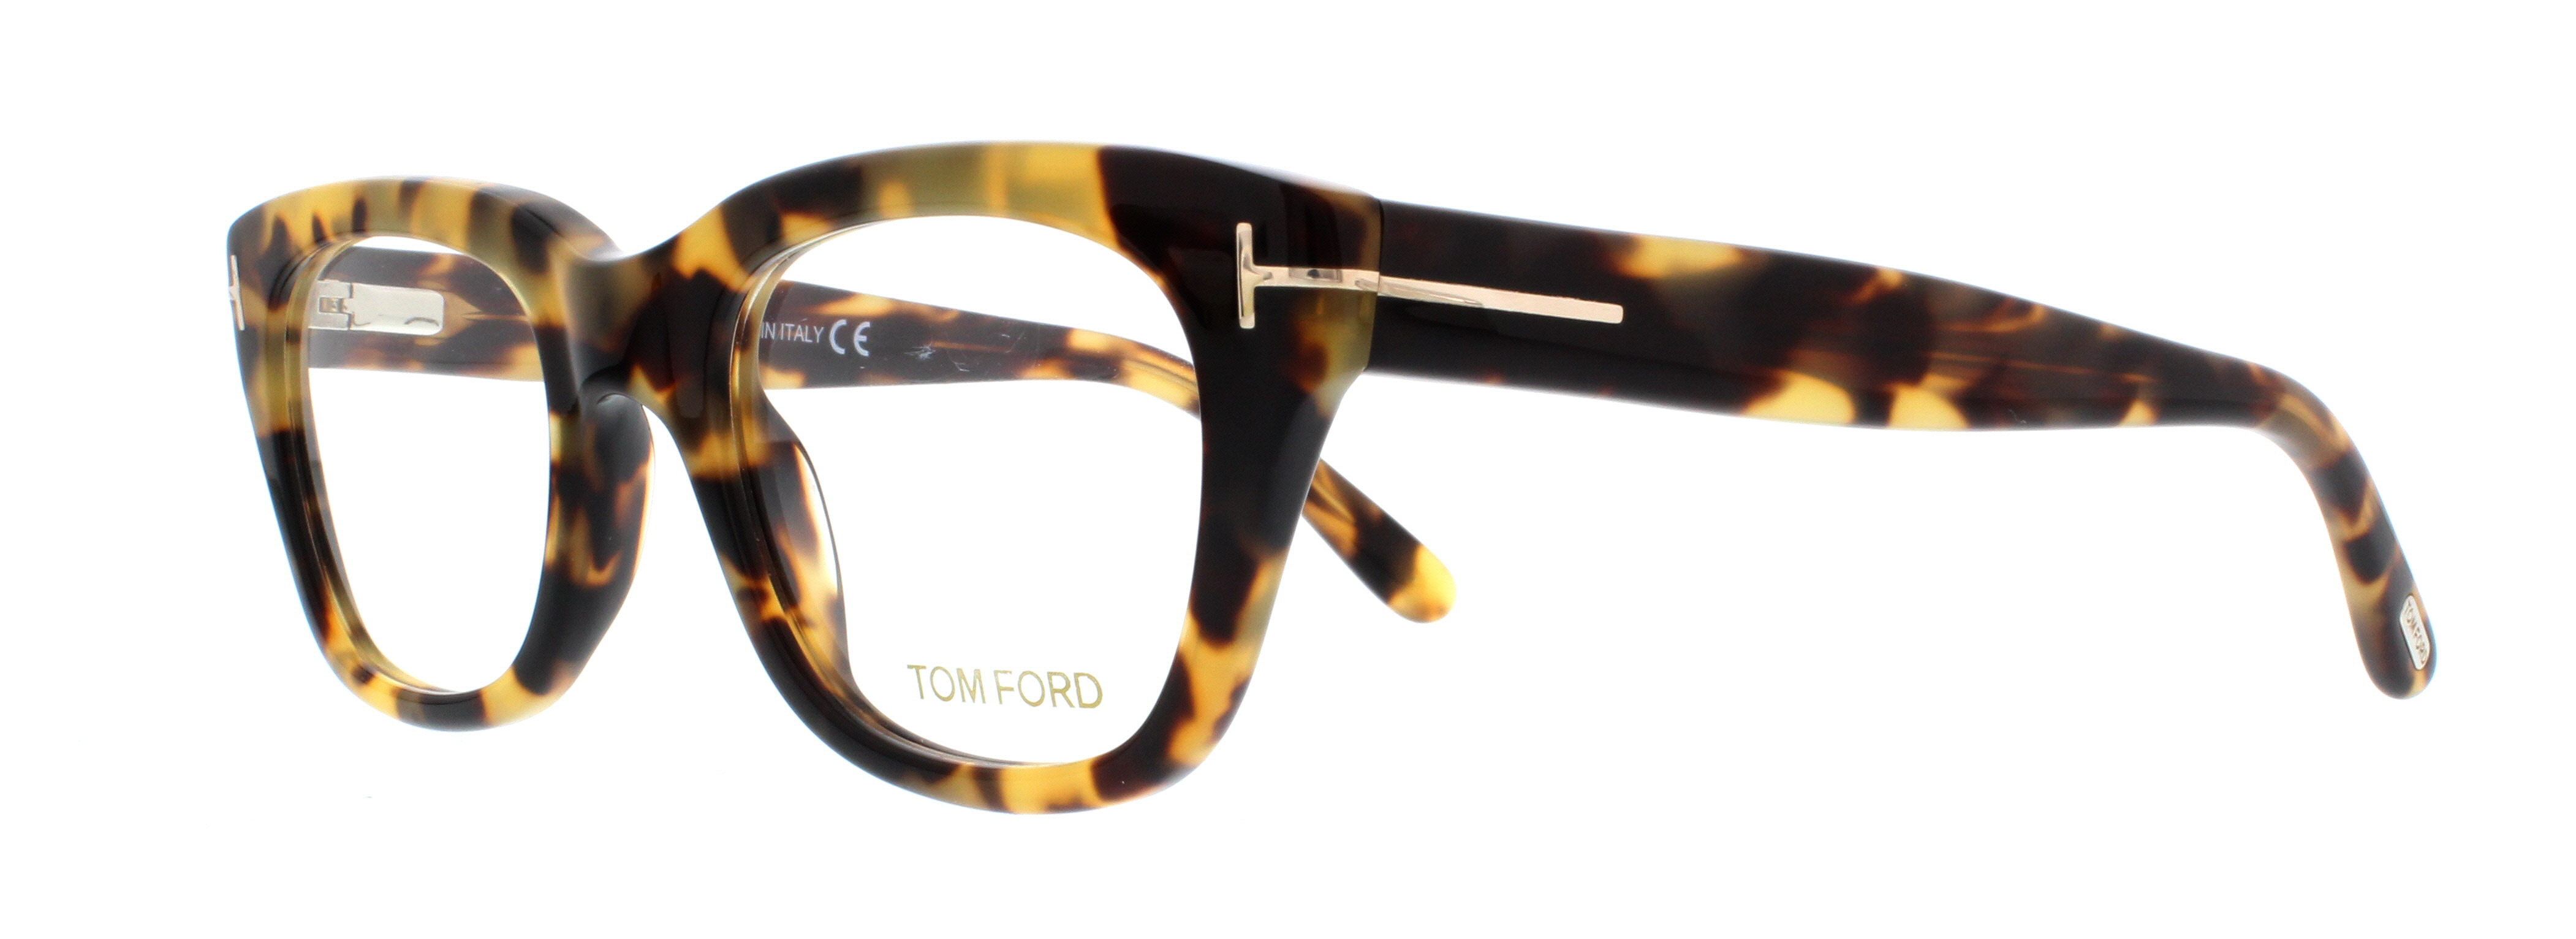 launches middle news sunglasses this designer east eyewear special edition in collection a latest launched the american n frames optical of tom ford fashion private has and month